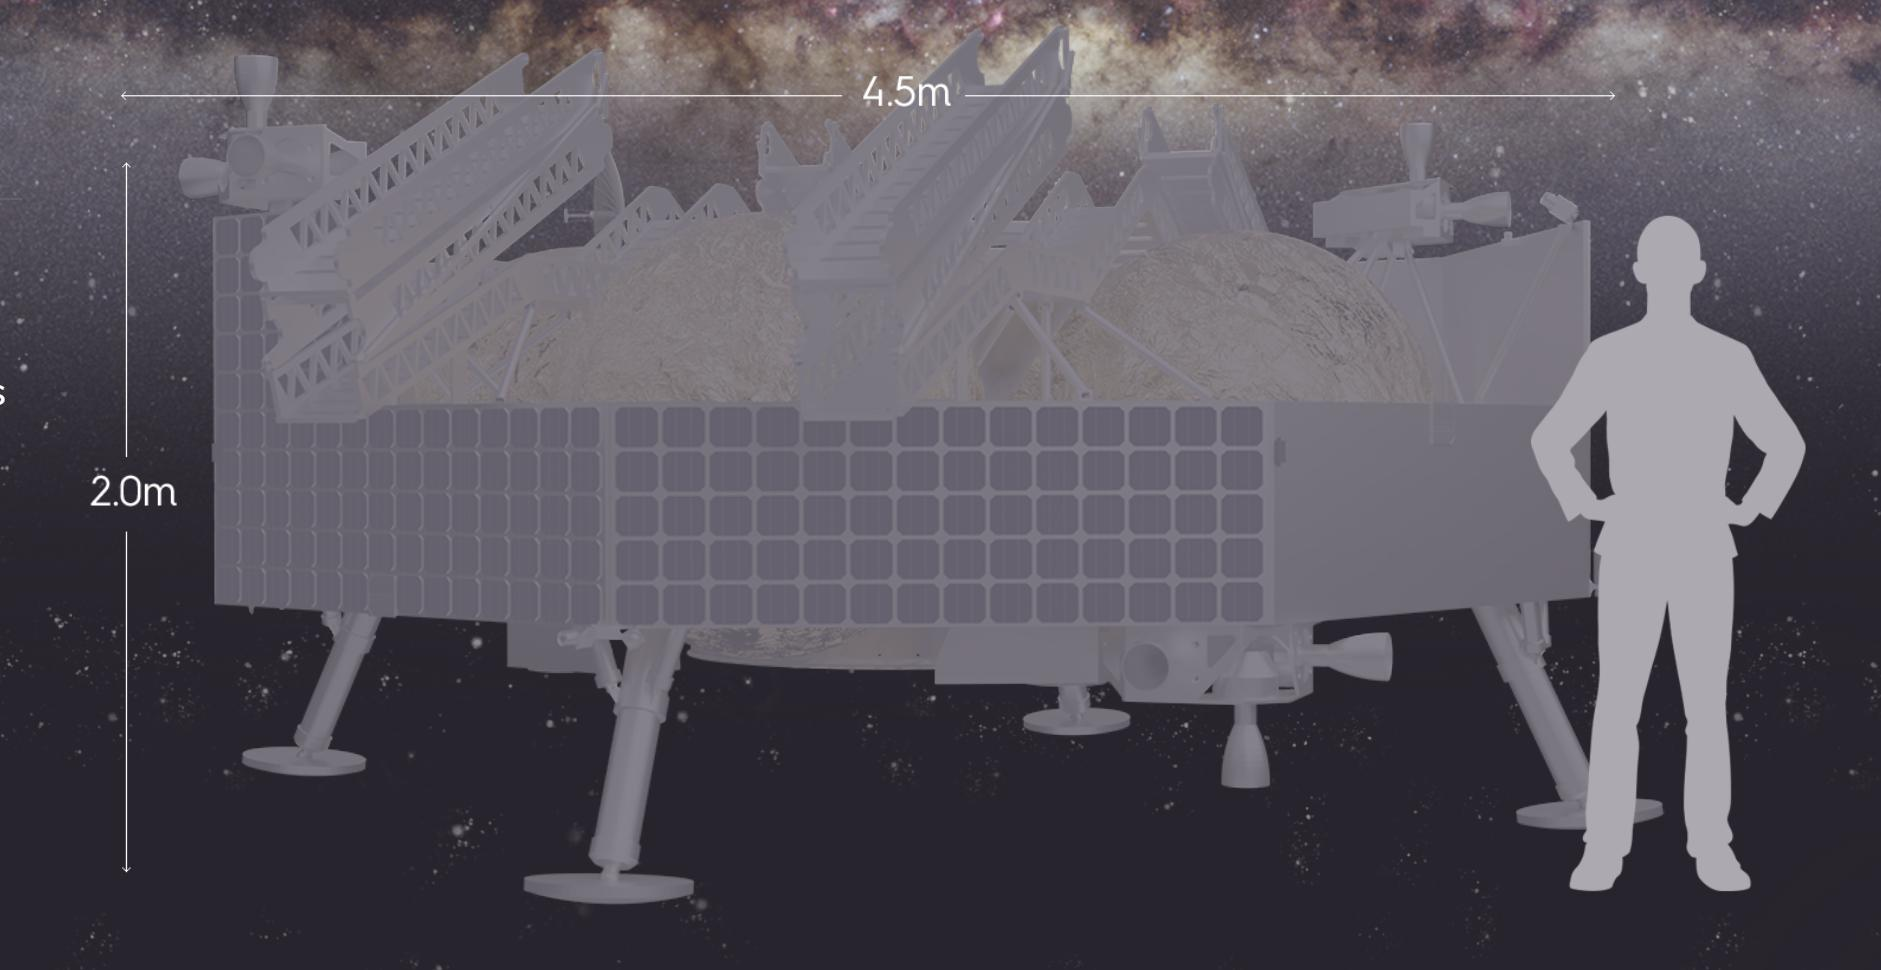 Griffin lander scale (Astrobotic) 1